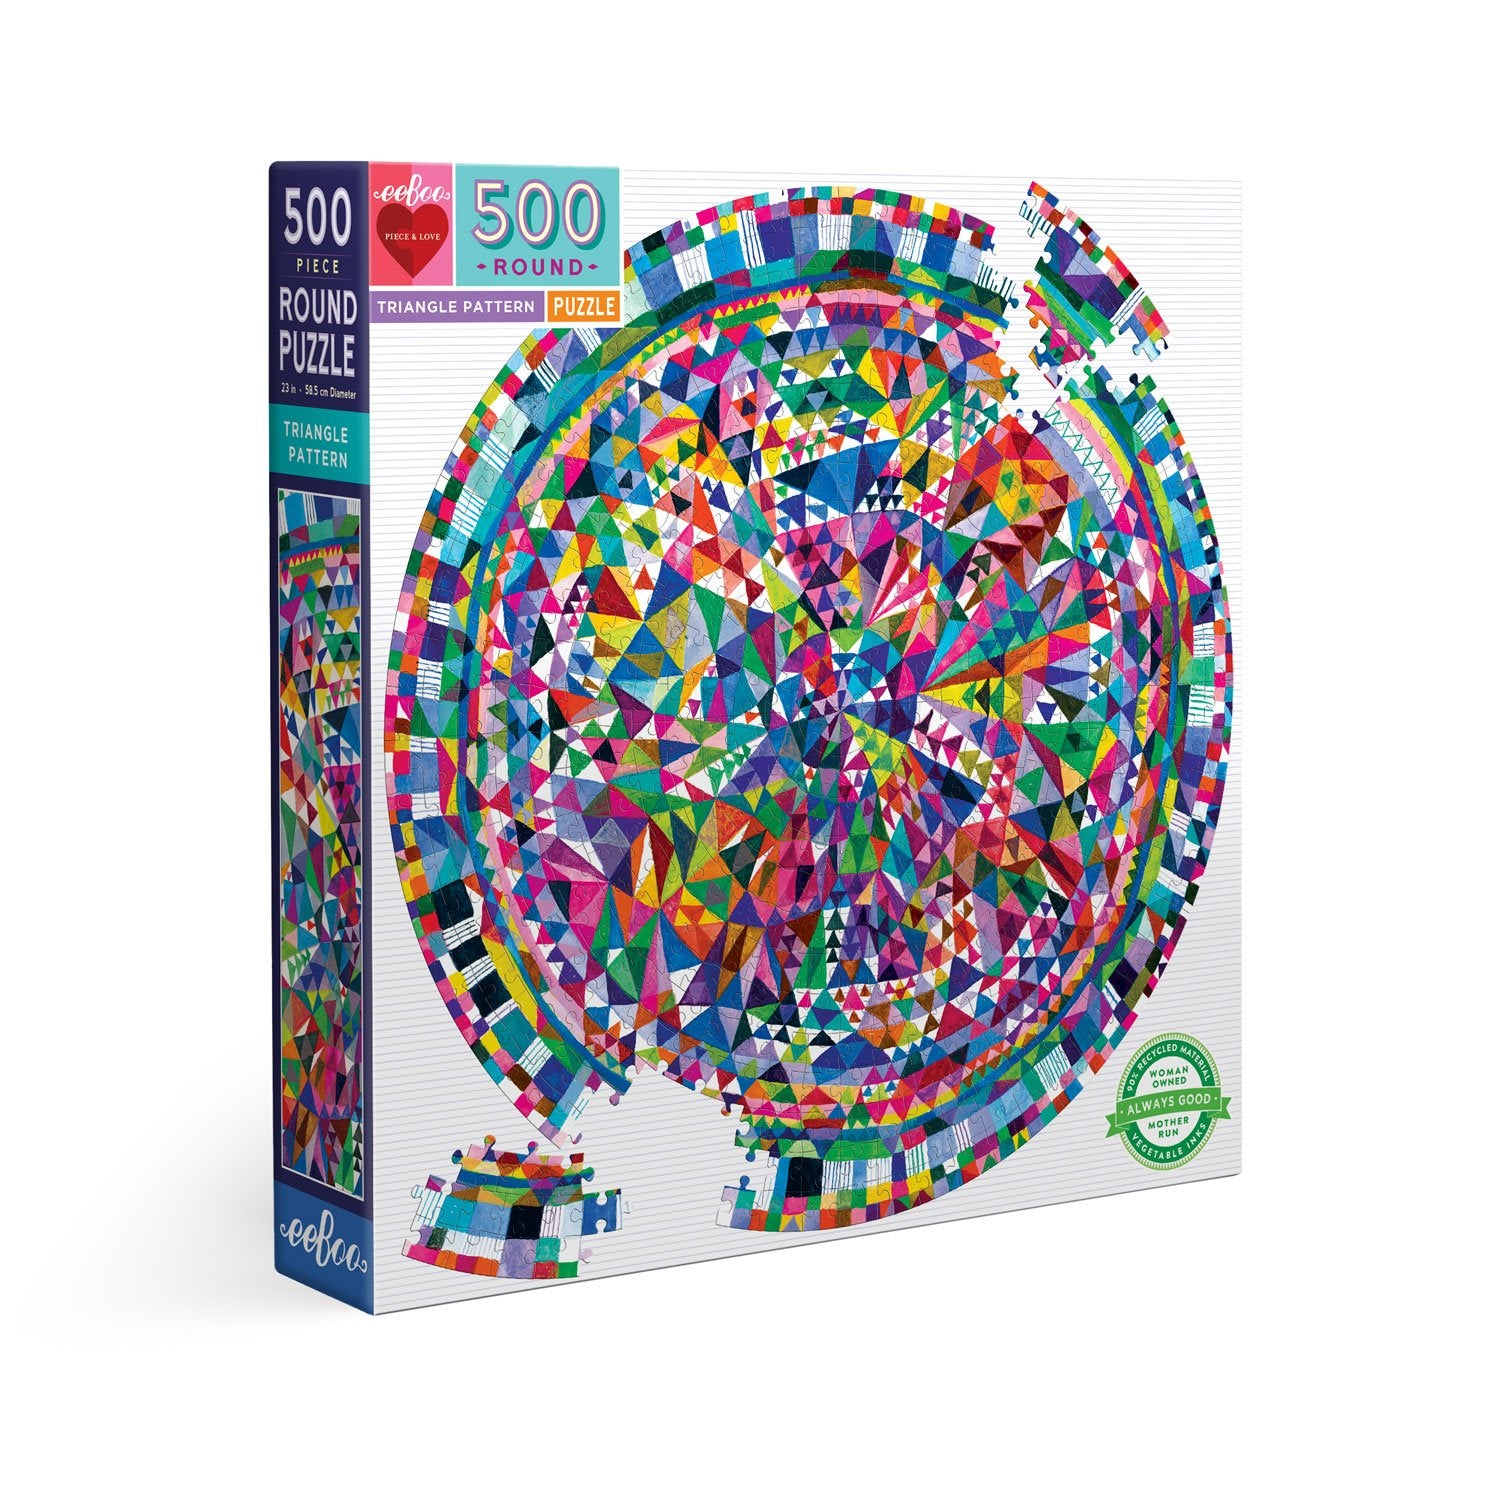 Triangle Pattern 500 Piece Round Puzzle